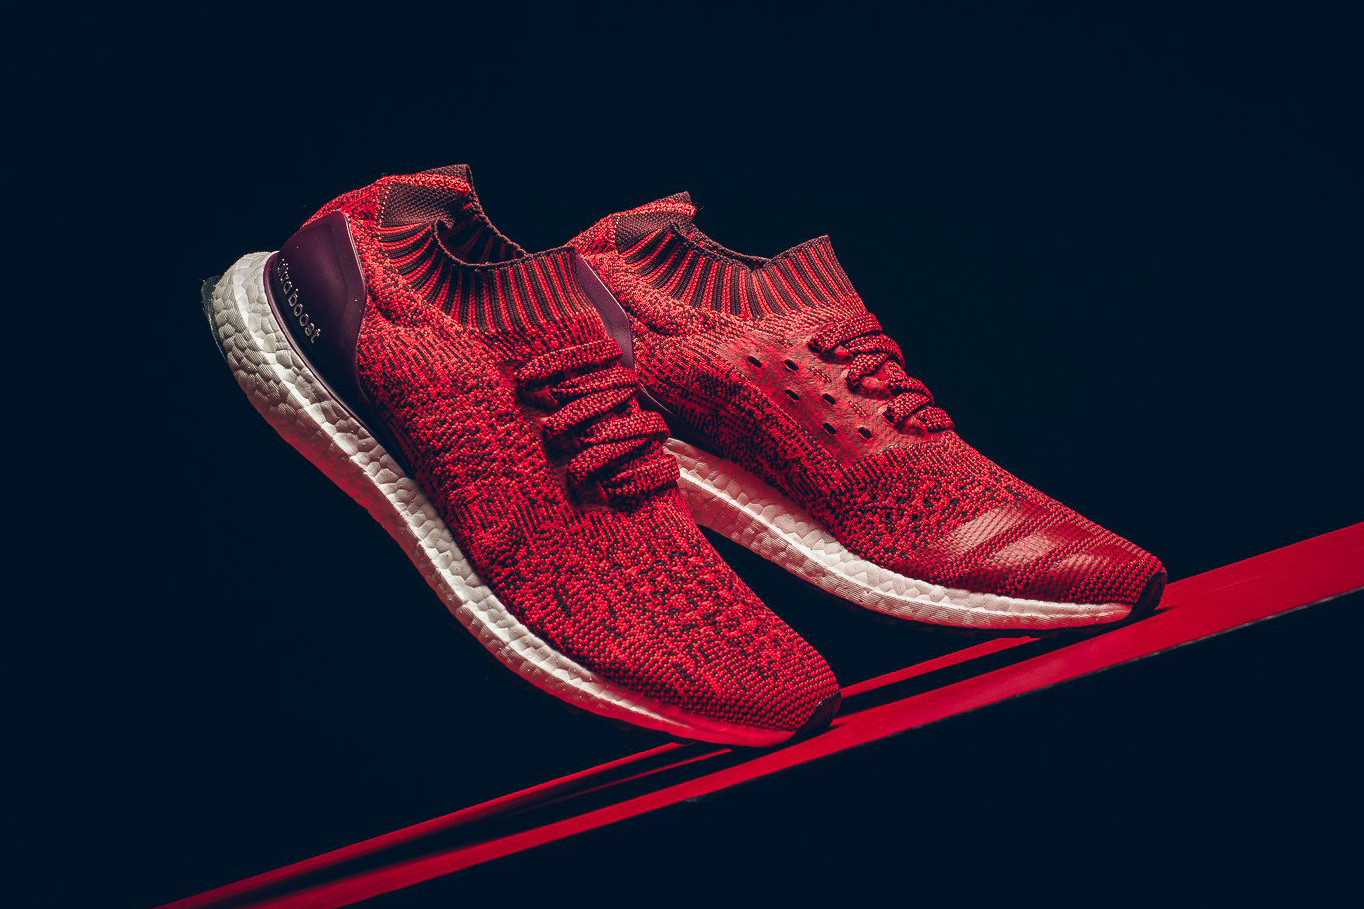 adidas UltraBOOST Uncaged Red/Burgundy